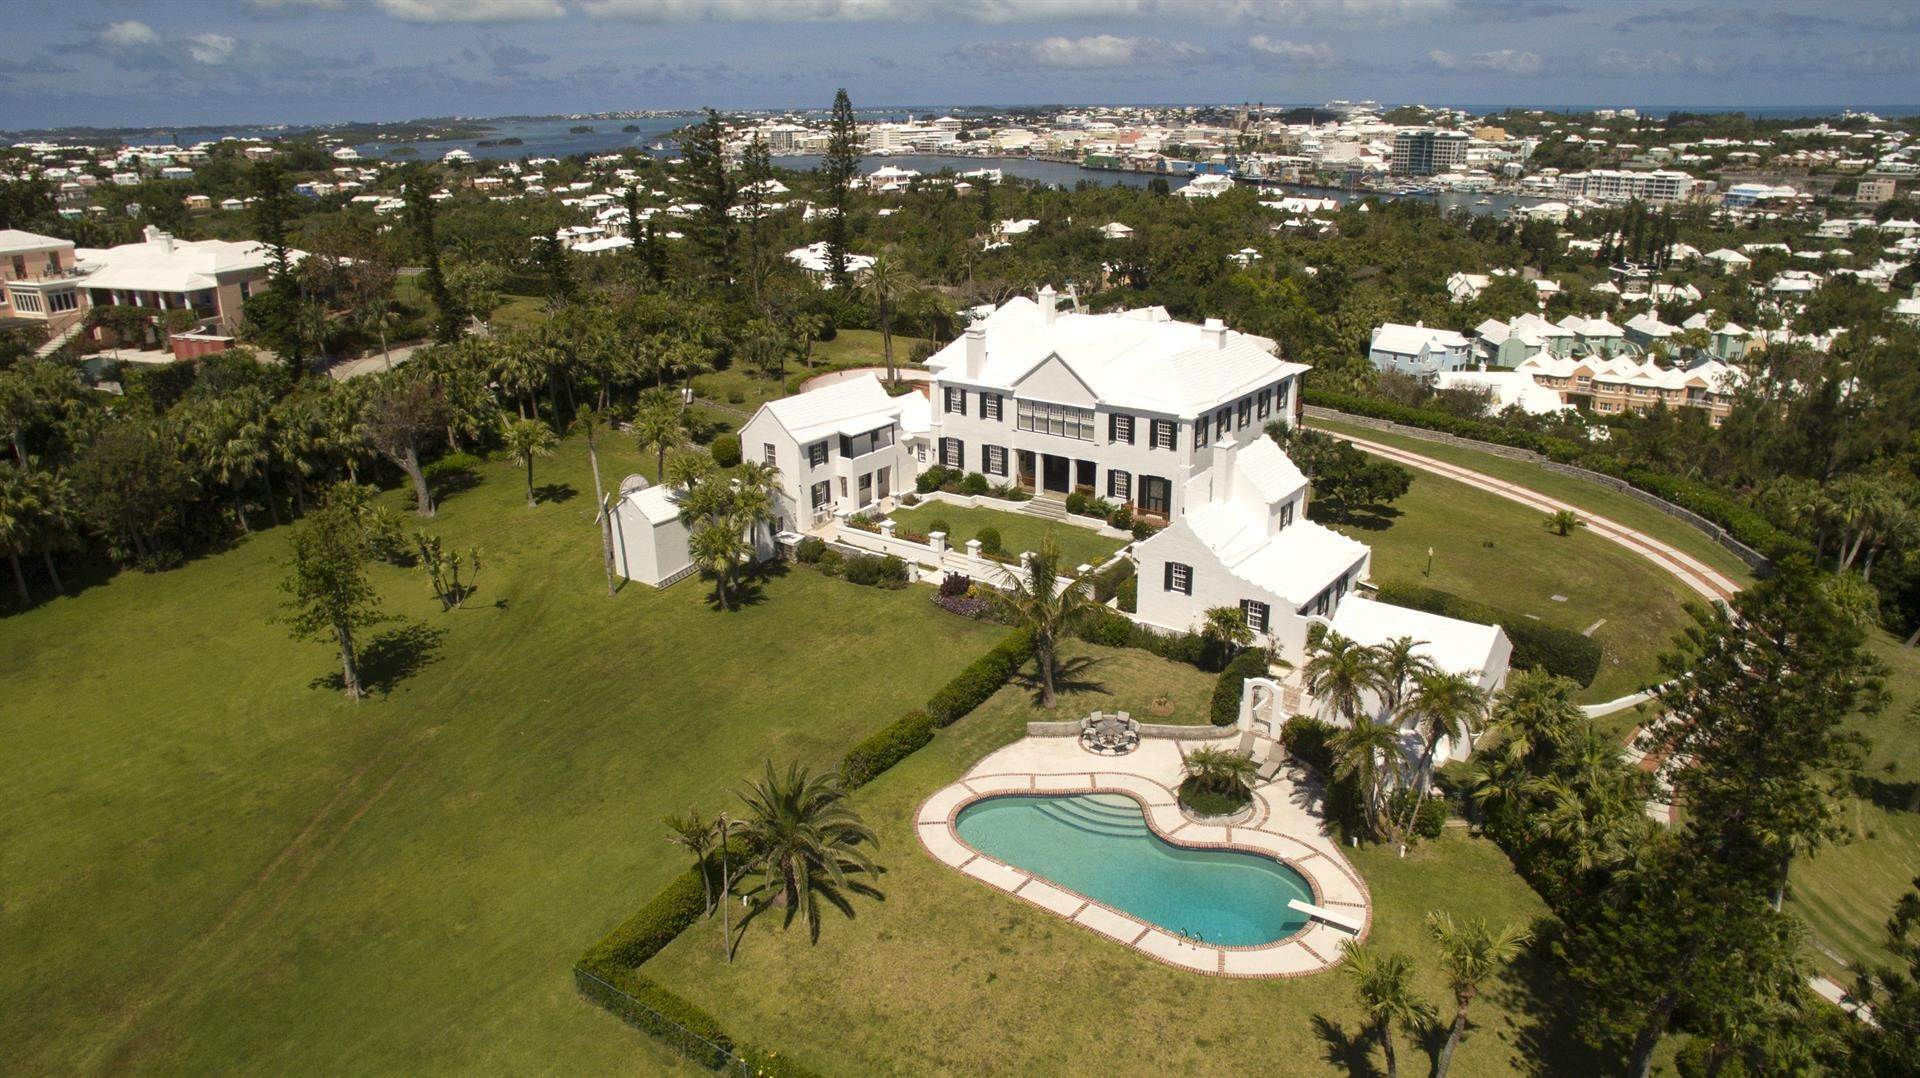 4. Residência para Venda às Bellevue Estate At Grape Bay Beach Bellevue Estate At Grape Bay Beach, 6 Bellevue Drive,Bermuda – Sinclair Realty